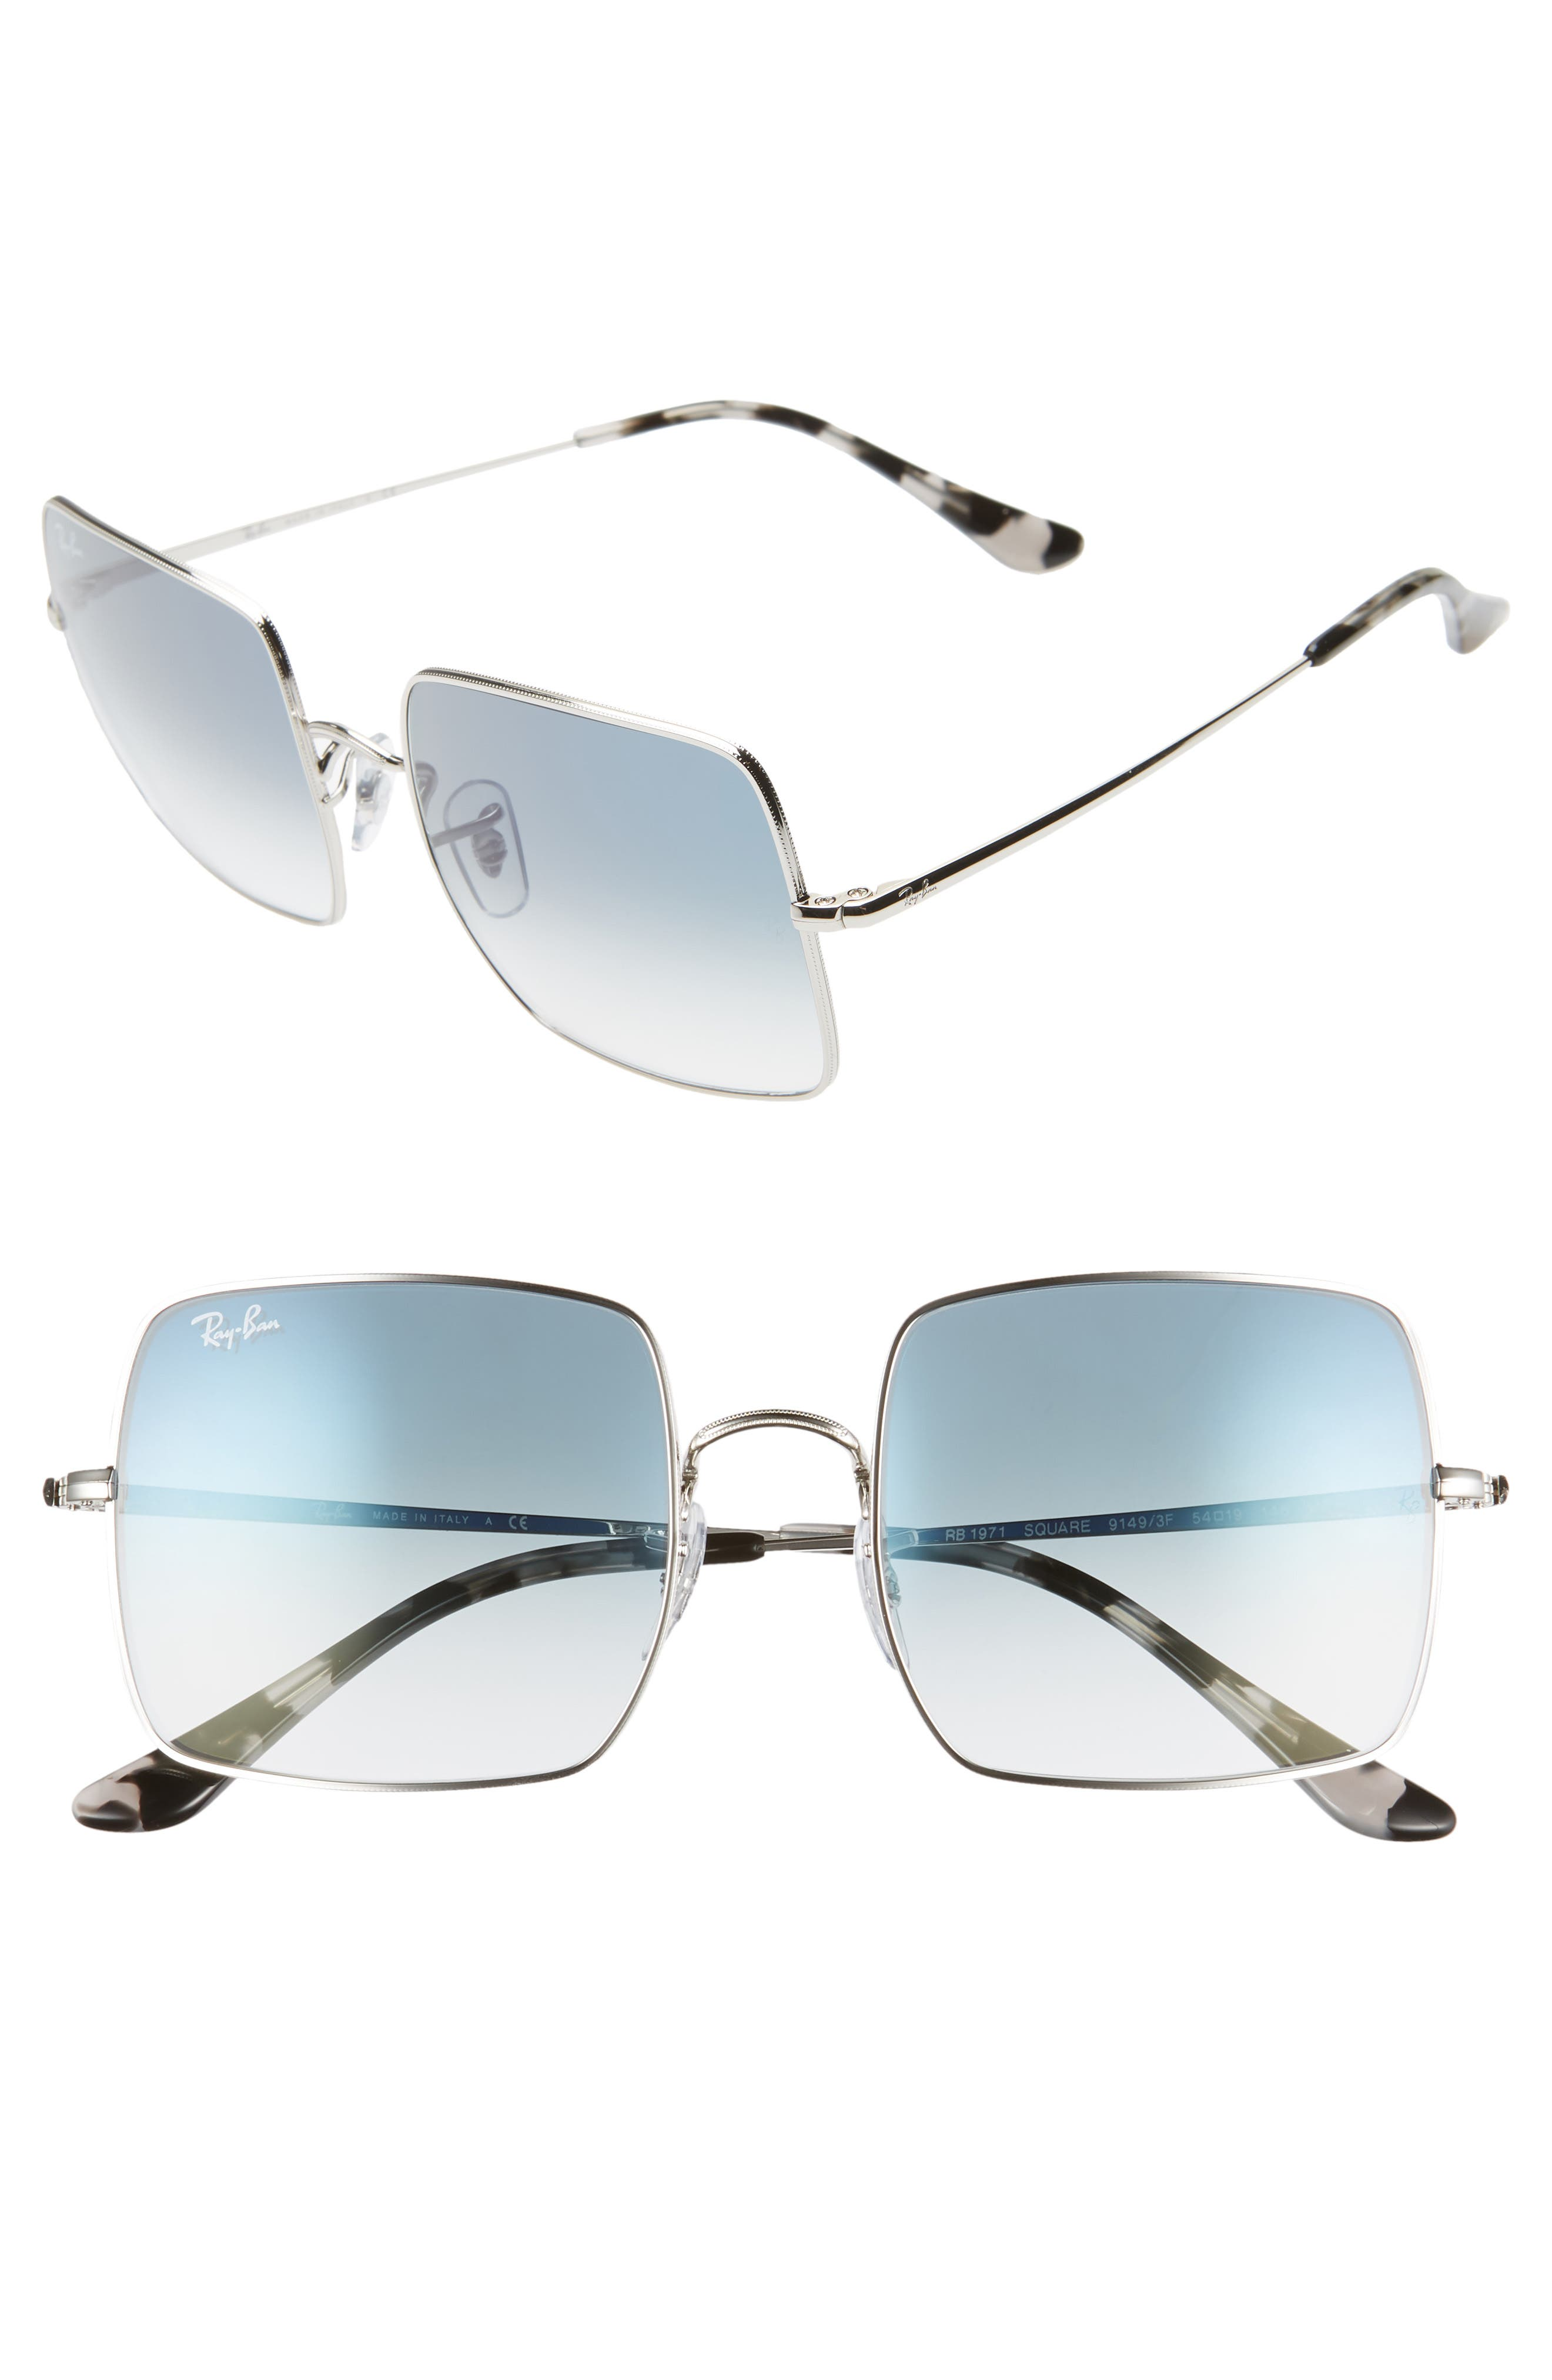 54mm Square Sunglasses by Ray Ban